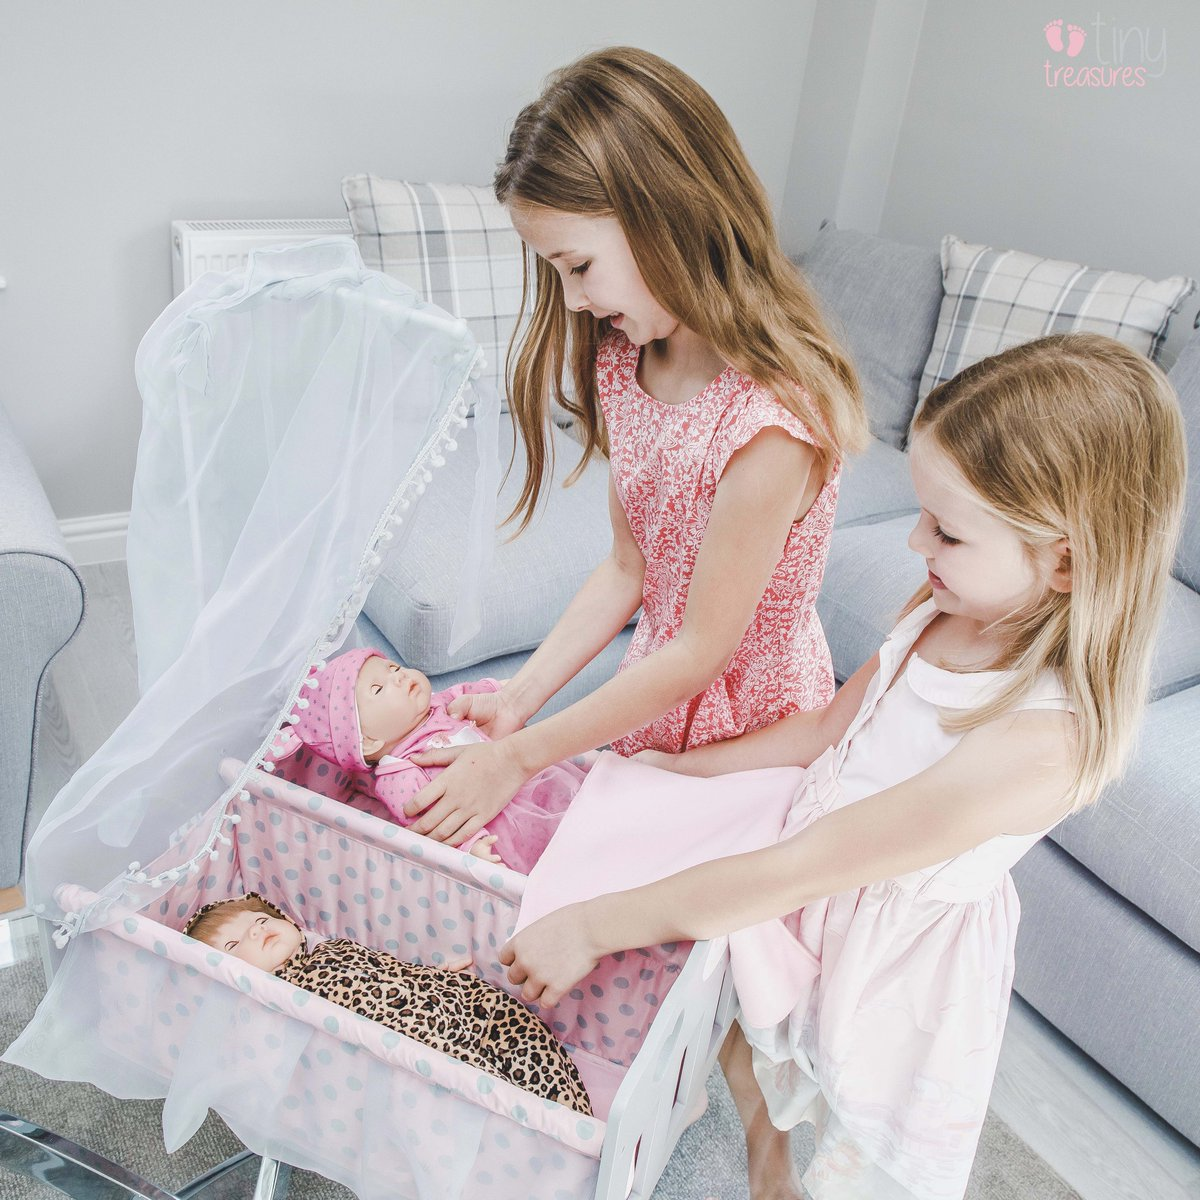 The Tiny Treasures wooden double cot is perfect for those role play days. You can find it at http://Argos.co.uk  . . . #staysafe #stayhome #dolls #reborndolls #rebornbabies #newborn #dolls #newbornphotography #tinytreasures #dollcotspic.twitter.com/hG0s6ReBWe